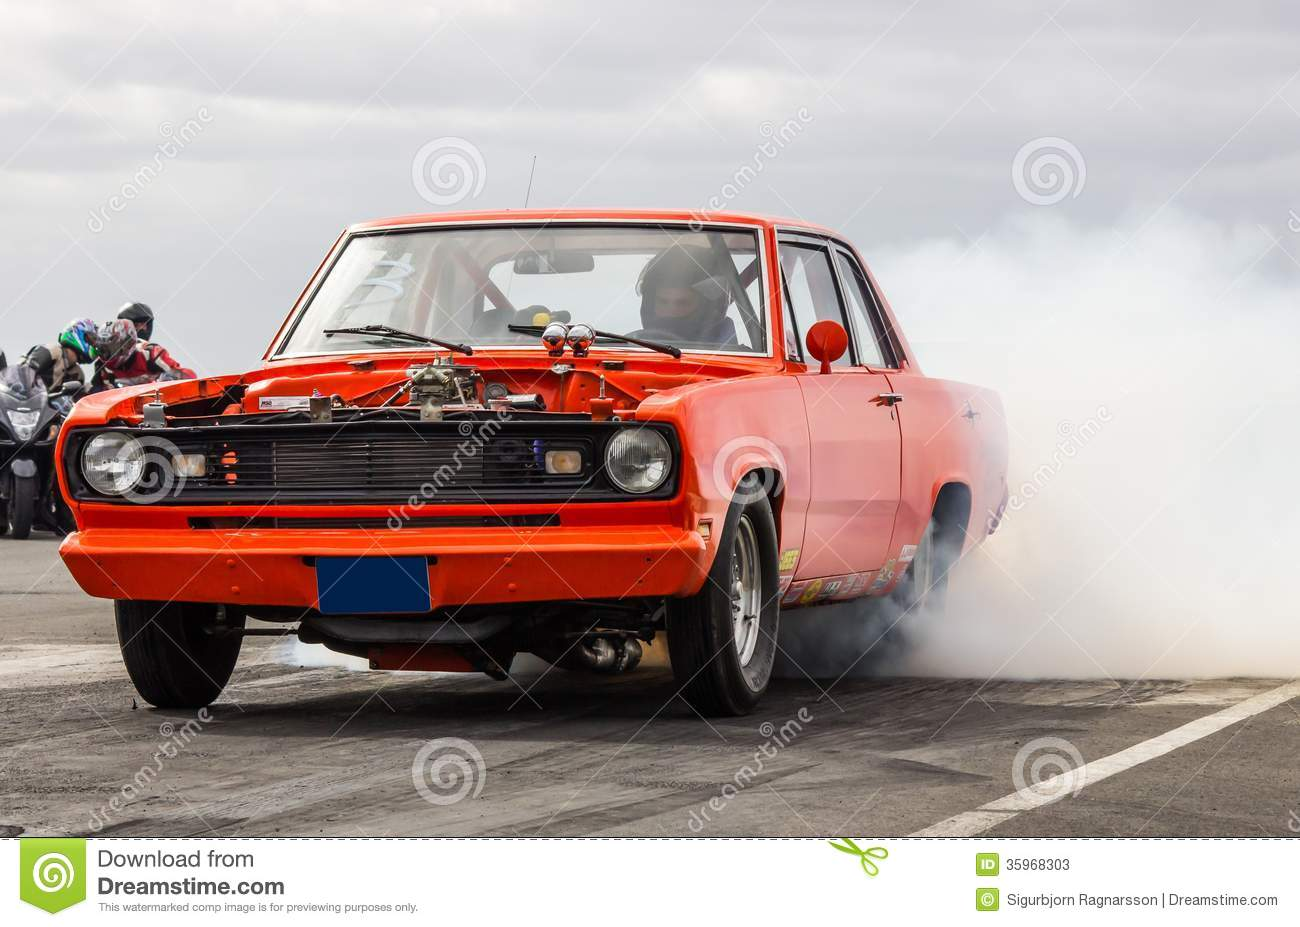 Photo 05 besides Stock Photos Plymouth Valiant Sig  Photo Drag Racing Iceland Muscle Car Burnout Image35968303 further 1009dp 800hp Twin Turbo Duramax Crate Engine together with Mopar Muscle Cars From All Over Pits At likewise Moto Guzzi Racer. on drag race car headlight